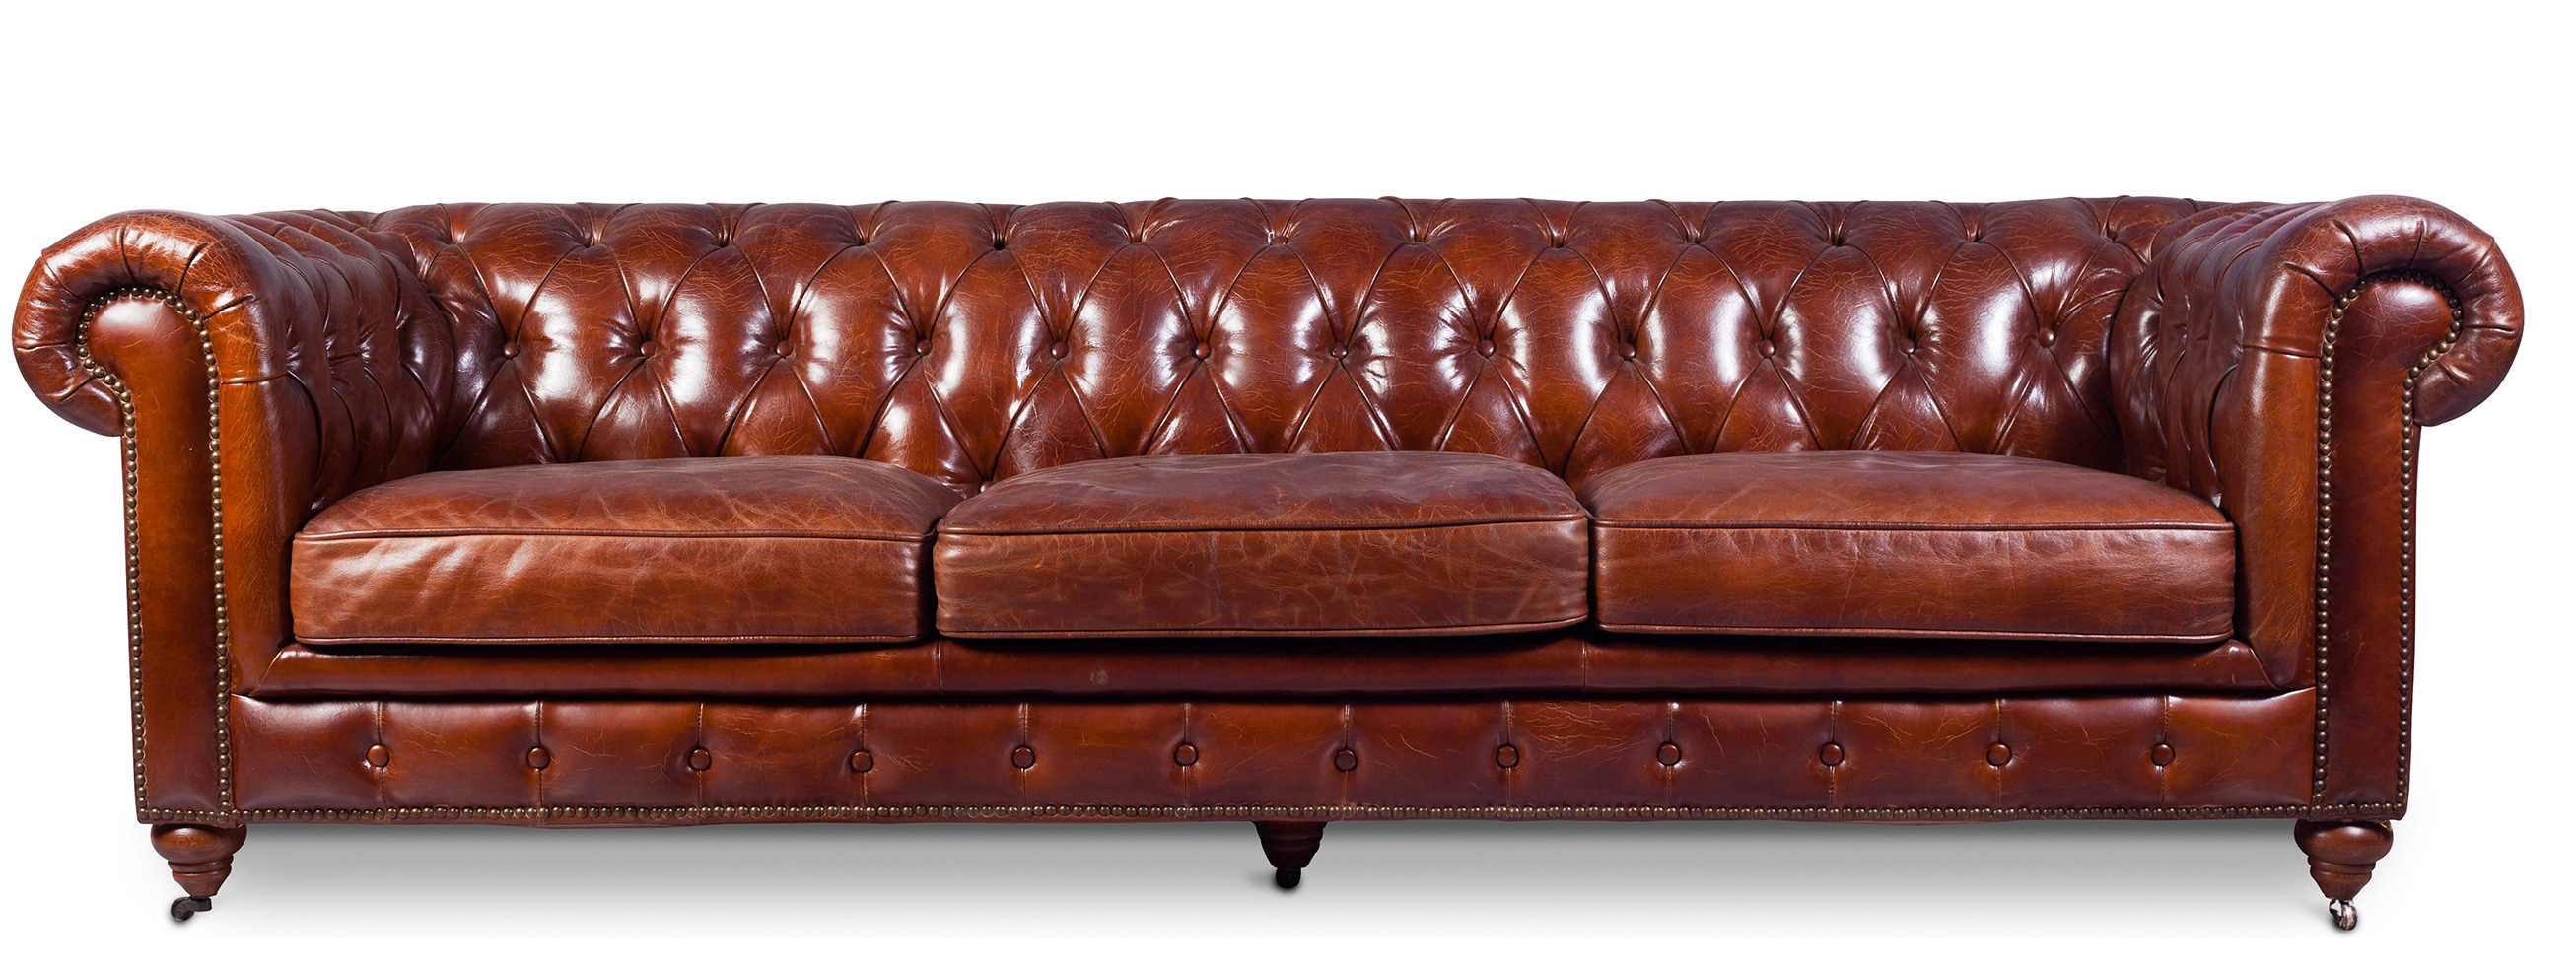 canap 4 places cuir marron clair chesterfield lower. Black Bedroom Furniture Sets. Home Design Ideas